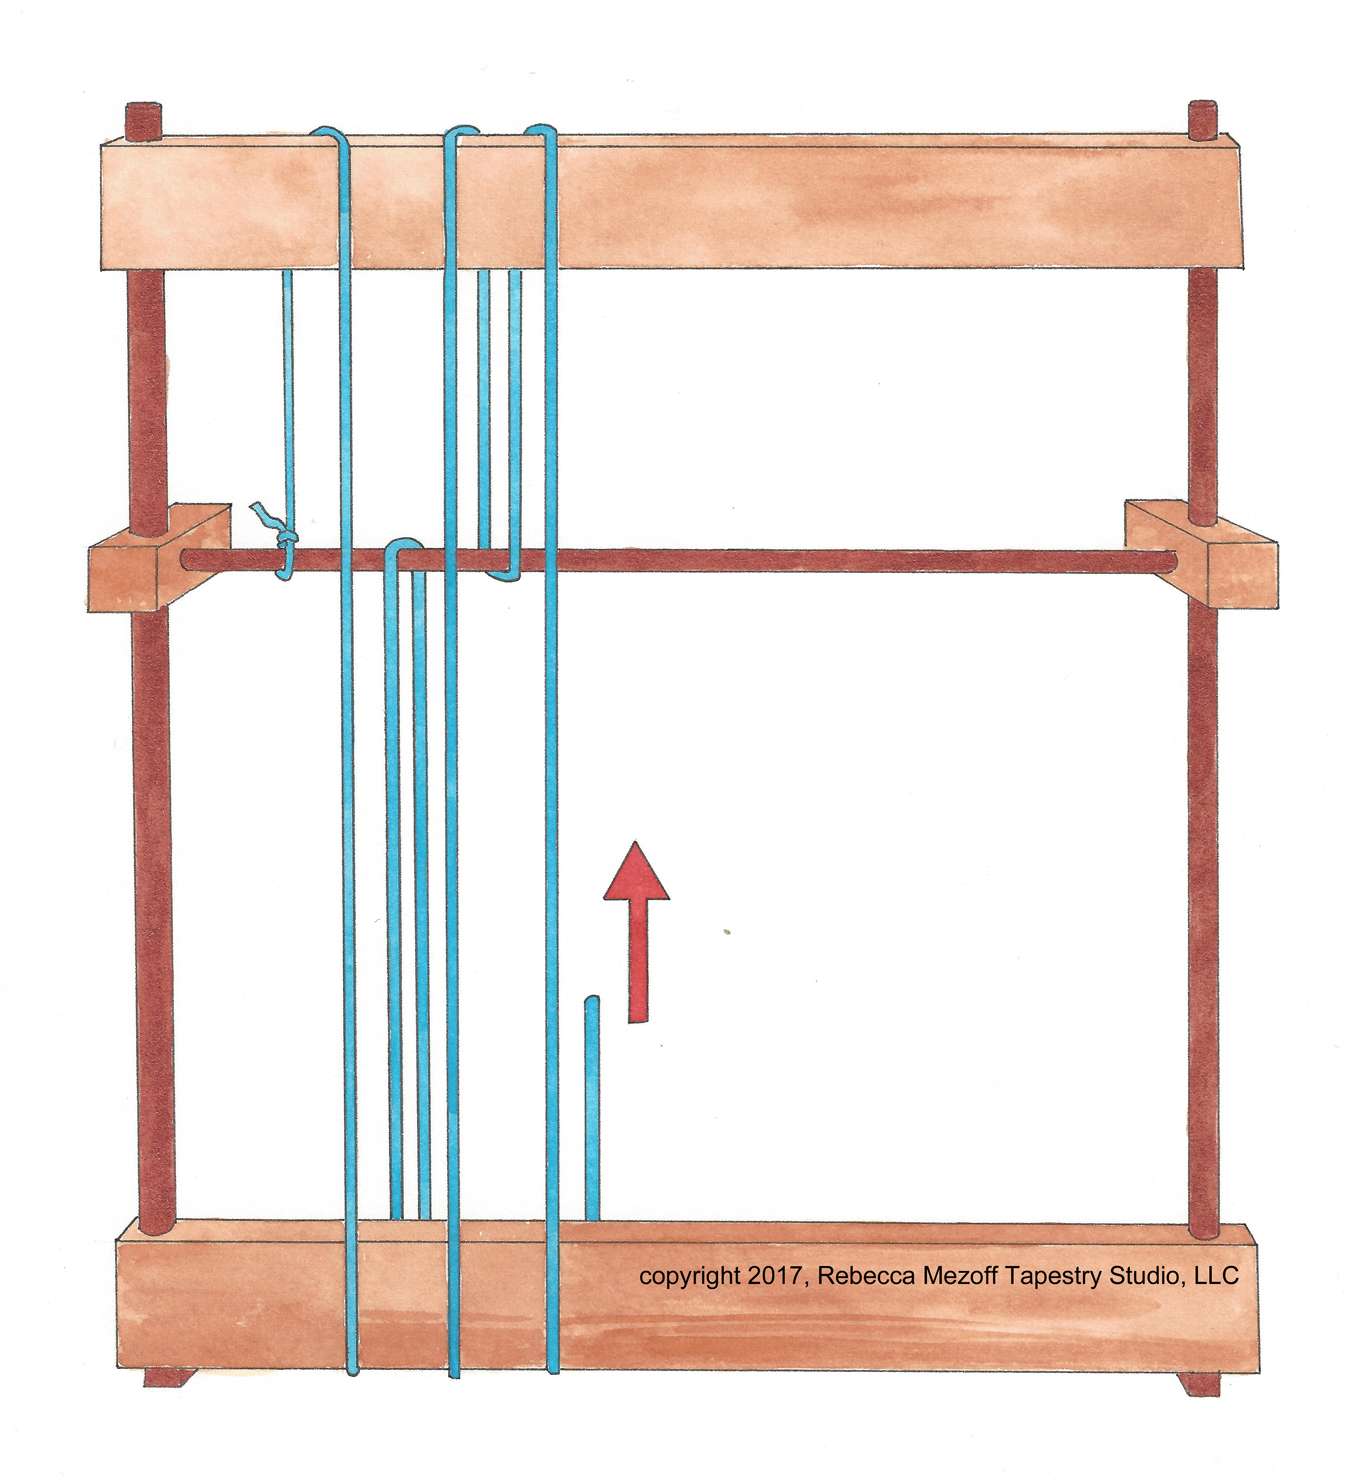 Warping pattern for a continuous tapestry warp